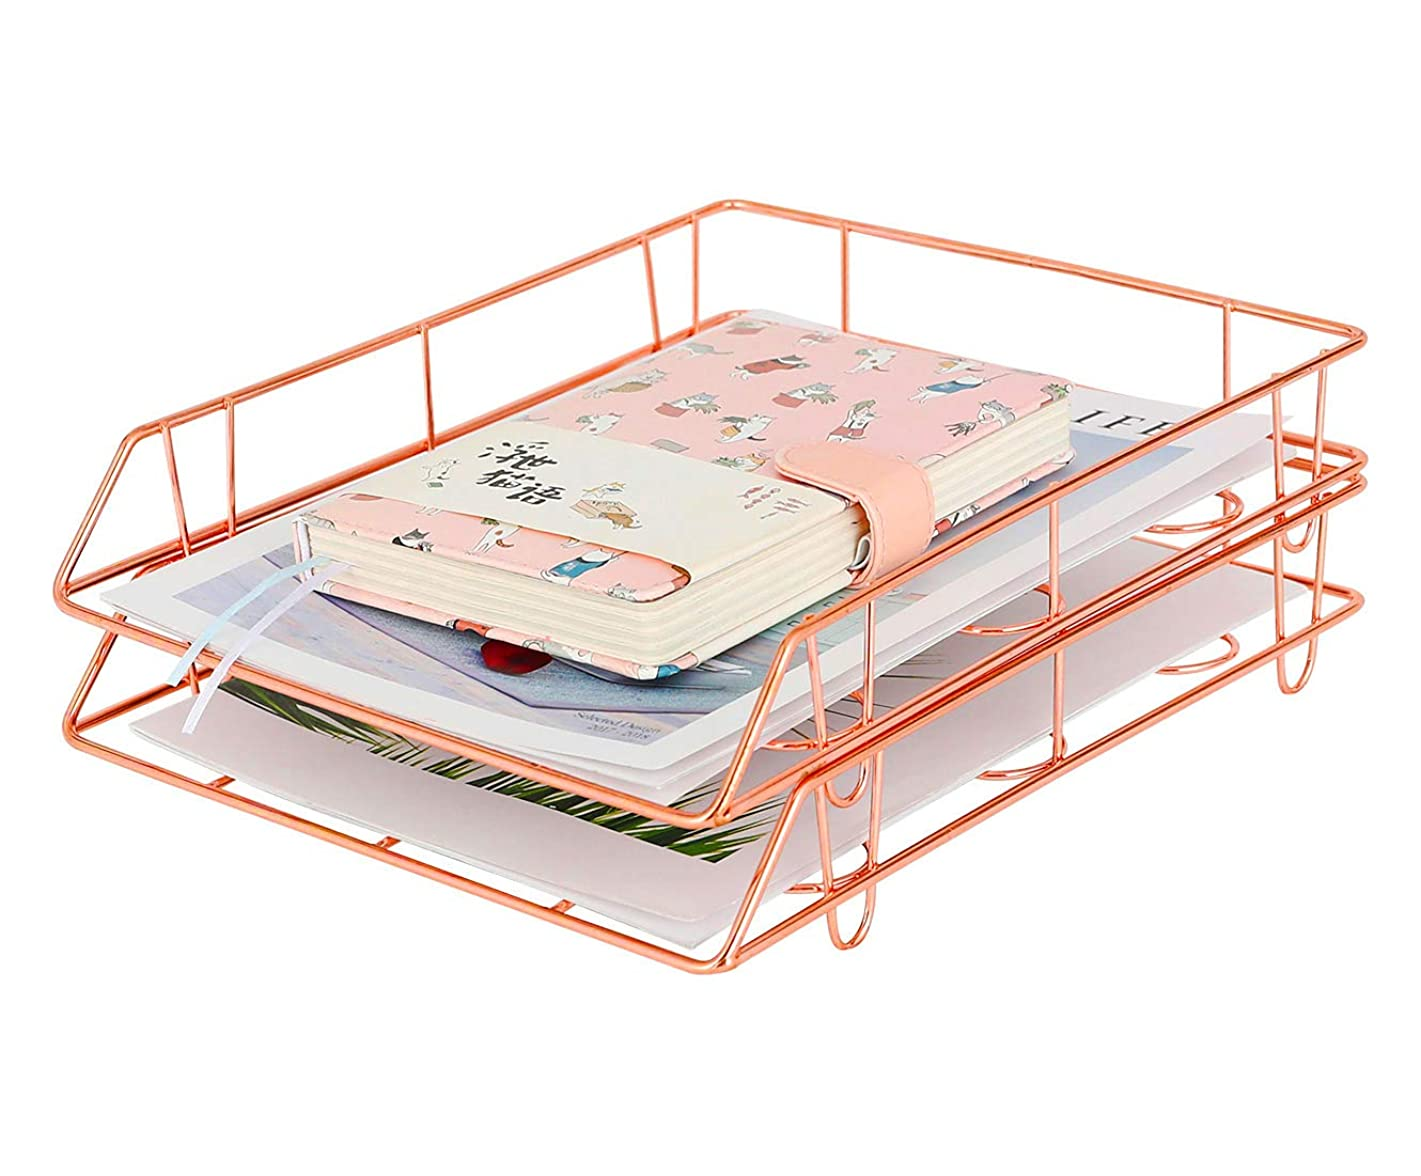 PAG Metal Stackable File Document Letter Tray Office Supplies Desk Organizer, Set of 2, Rose Gold